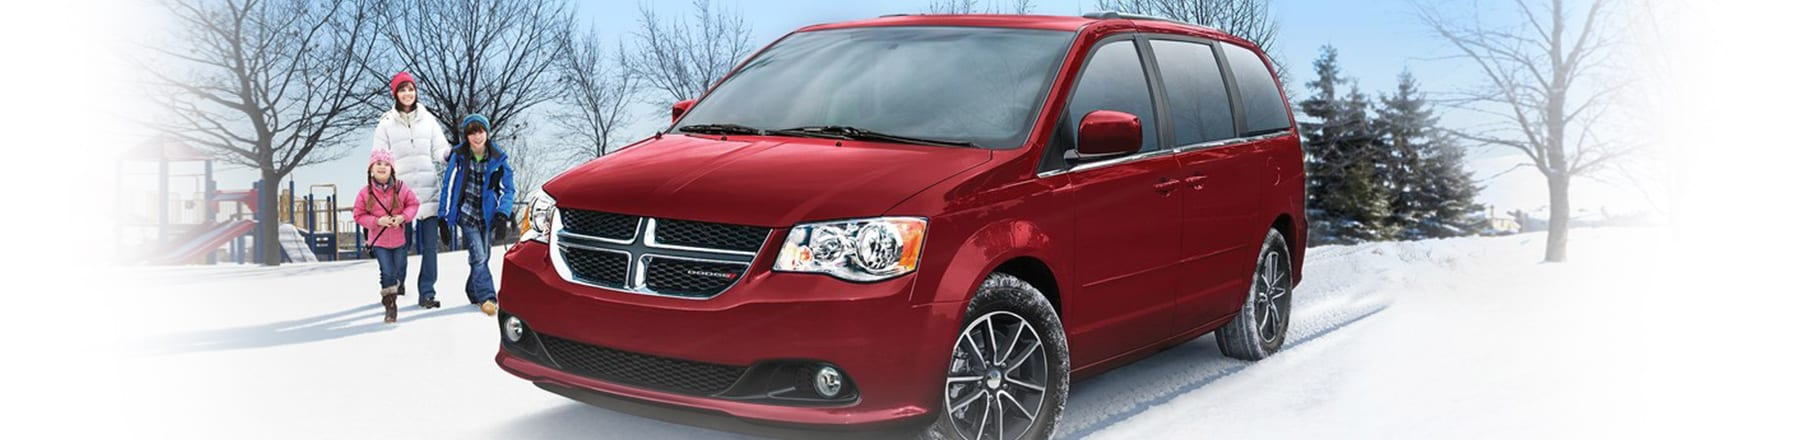 2018 Dodge Grand Caravan in winter background